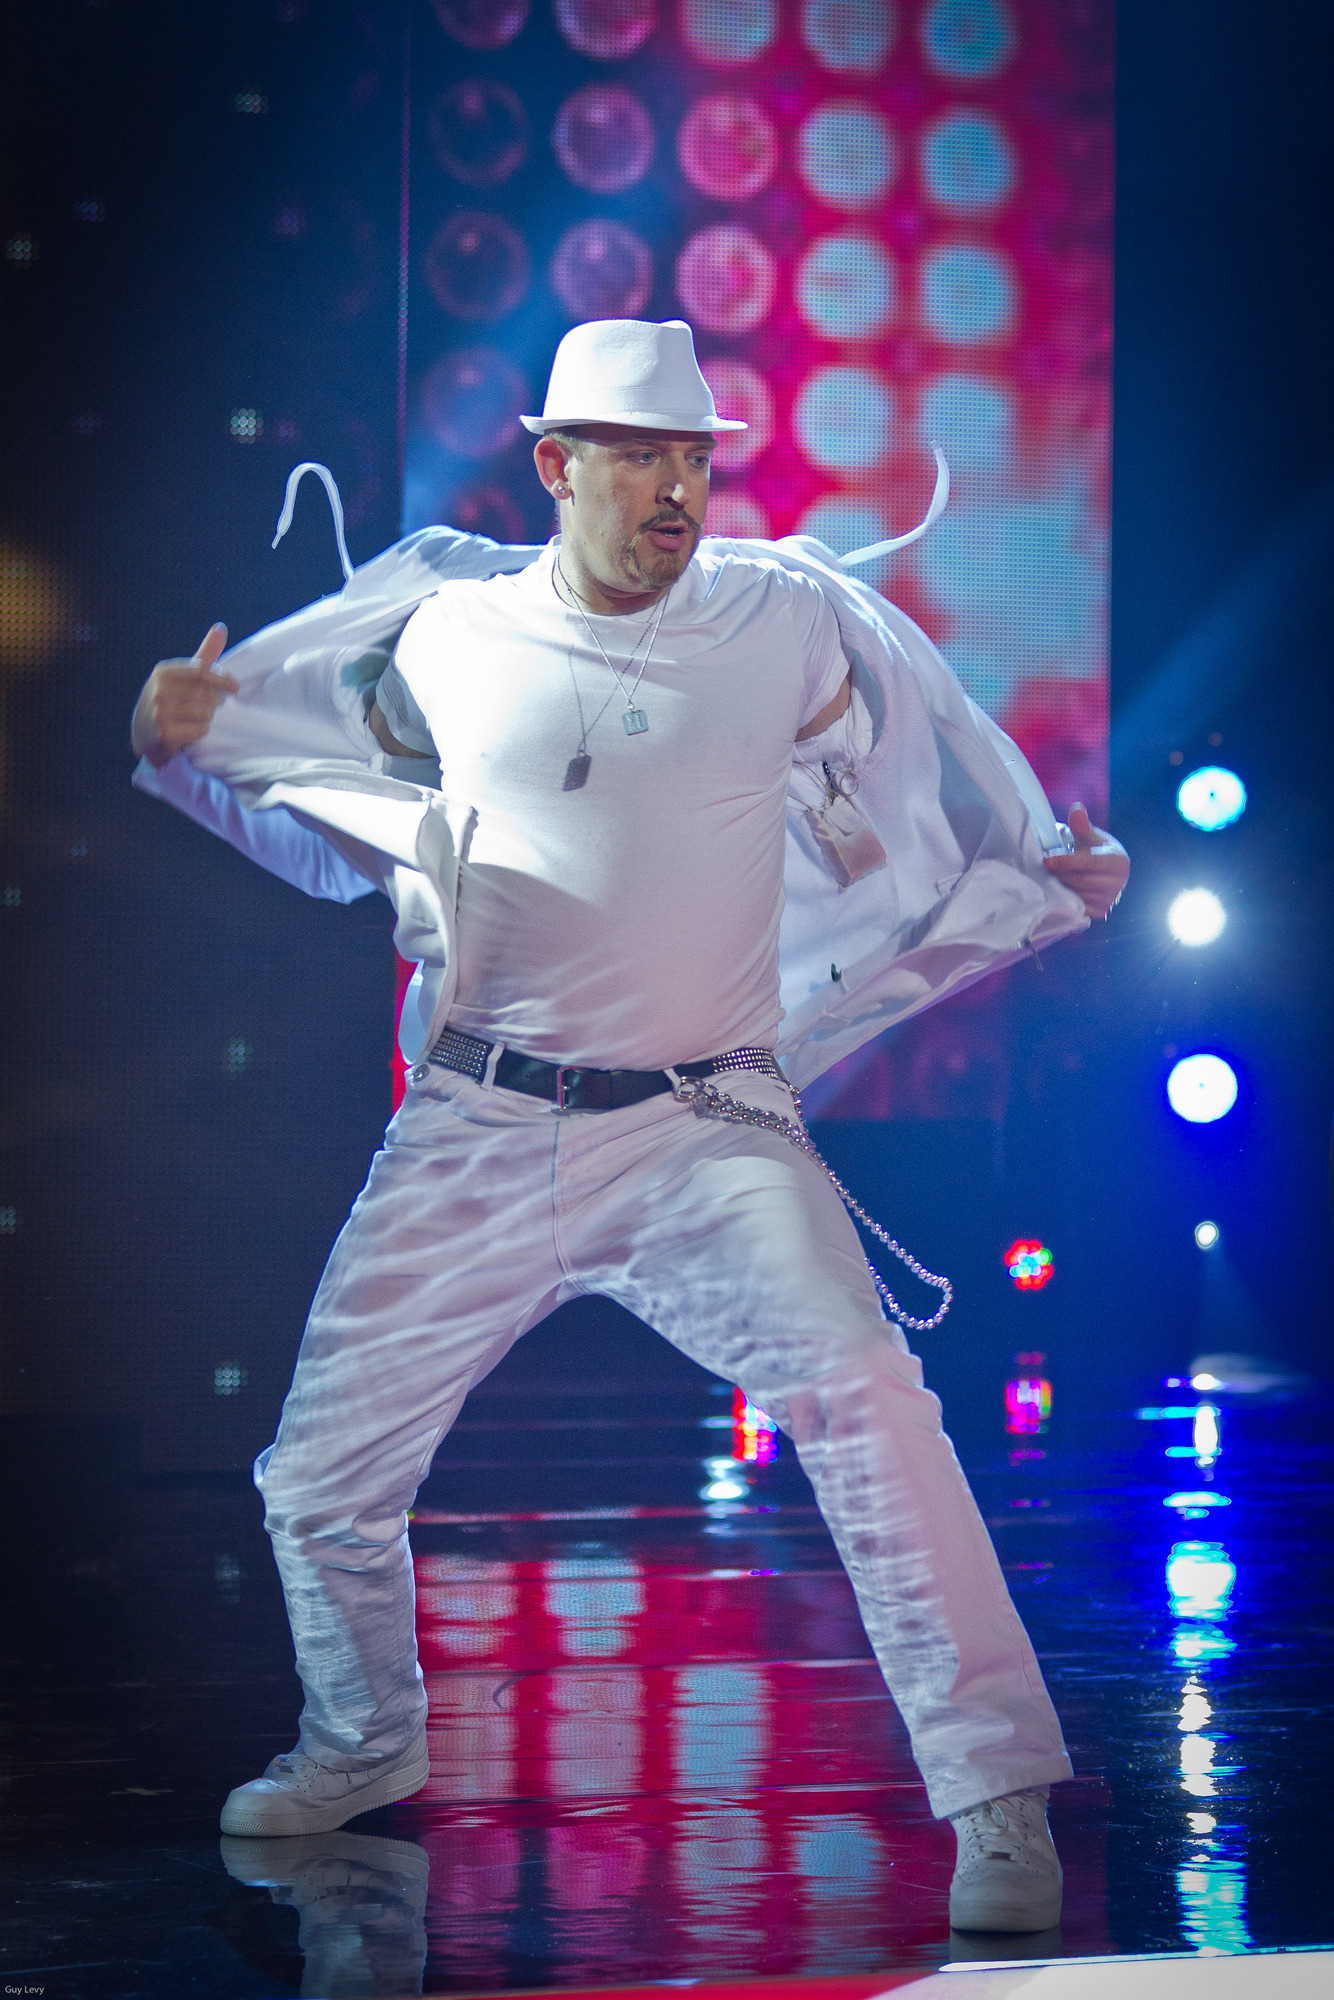 Tim Vine, Soap Stars win first round of Let's Dance For Comic Relief